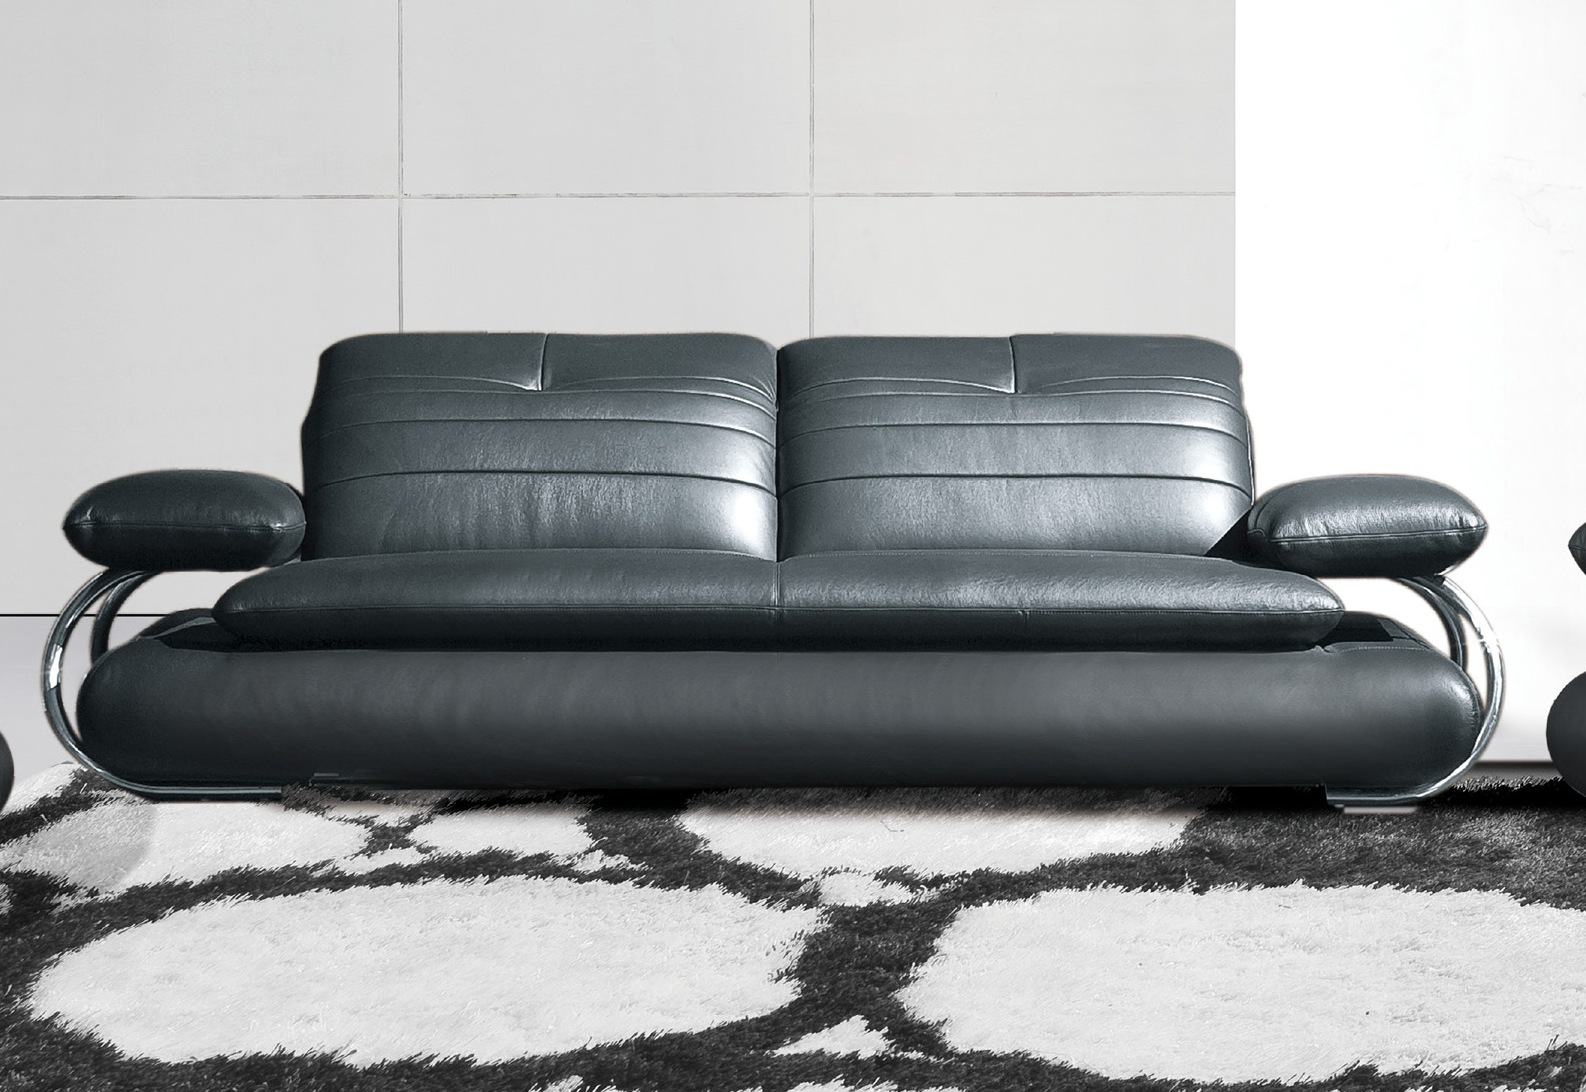 Black Sofas Of Modern Look In A Living Room: Unique Living Room Black Leather Sofa